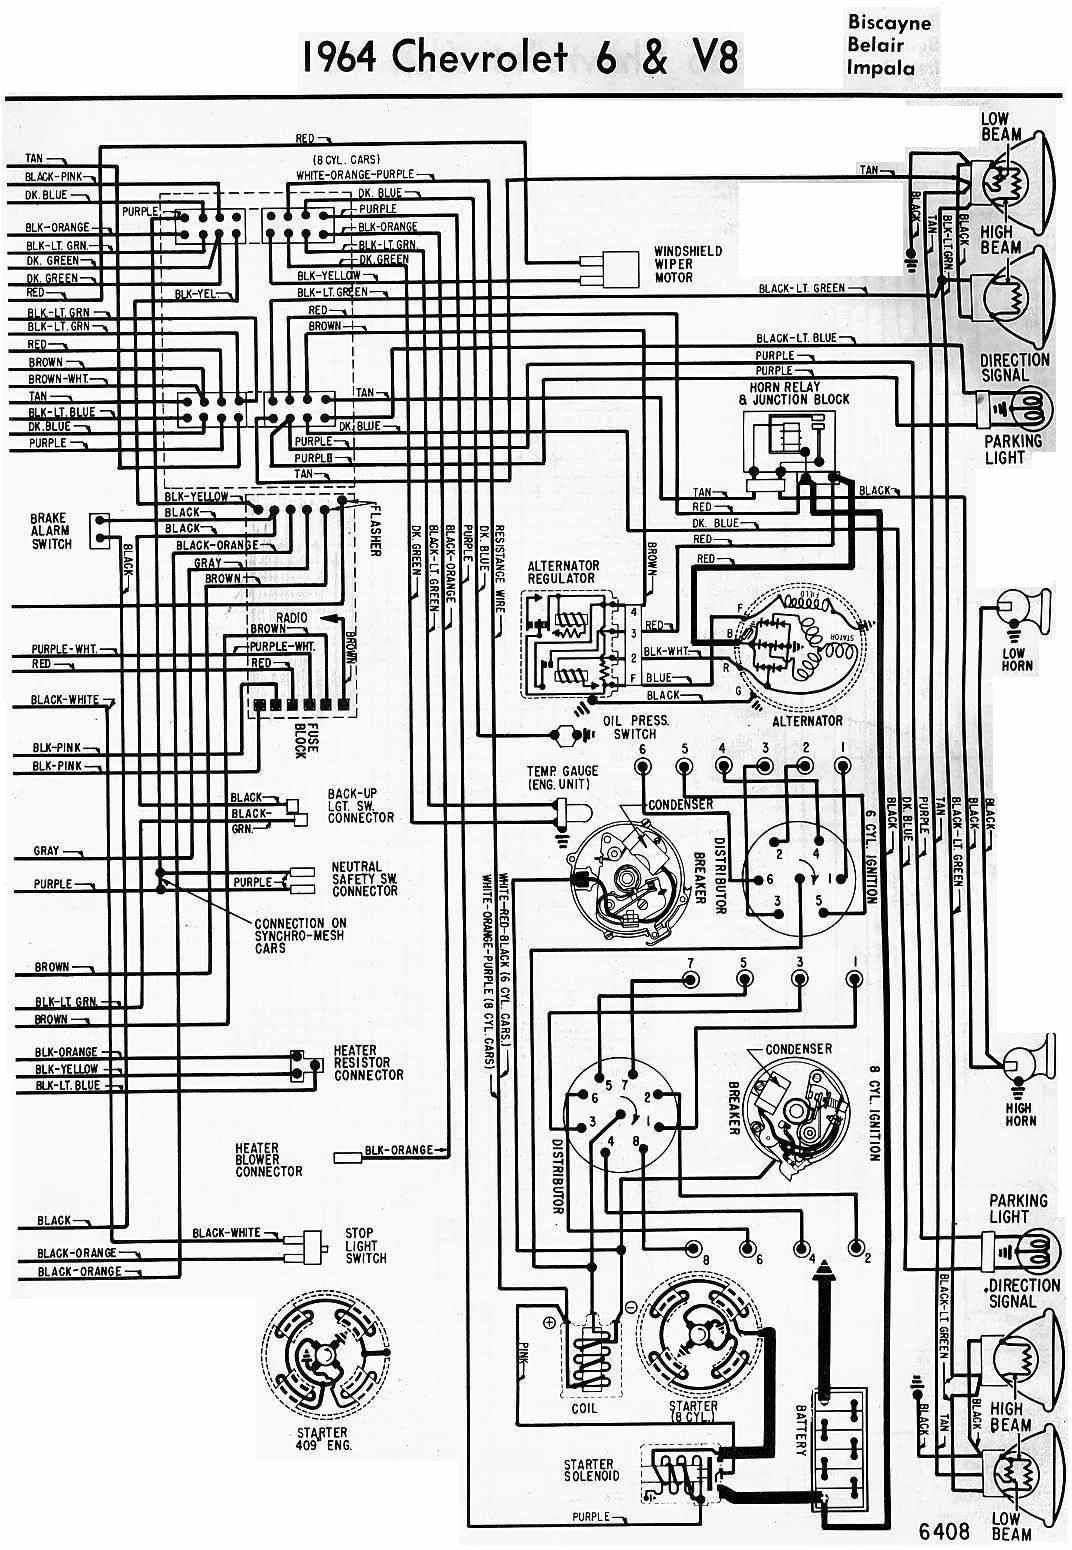 Ford Starter Solenoid Diagram Simple Guide About Wiring Wilson Hopper Trailer Diagrams Electrical Of 1964 Chevrolet 6 And V8 All 8n